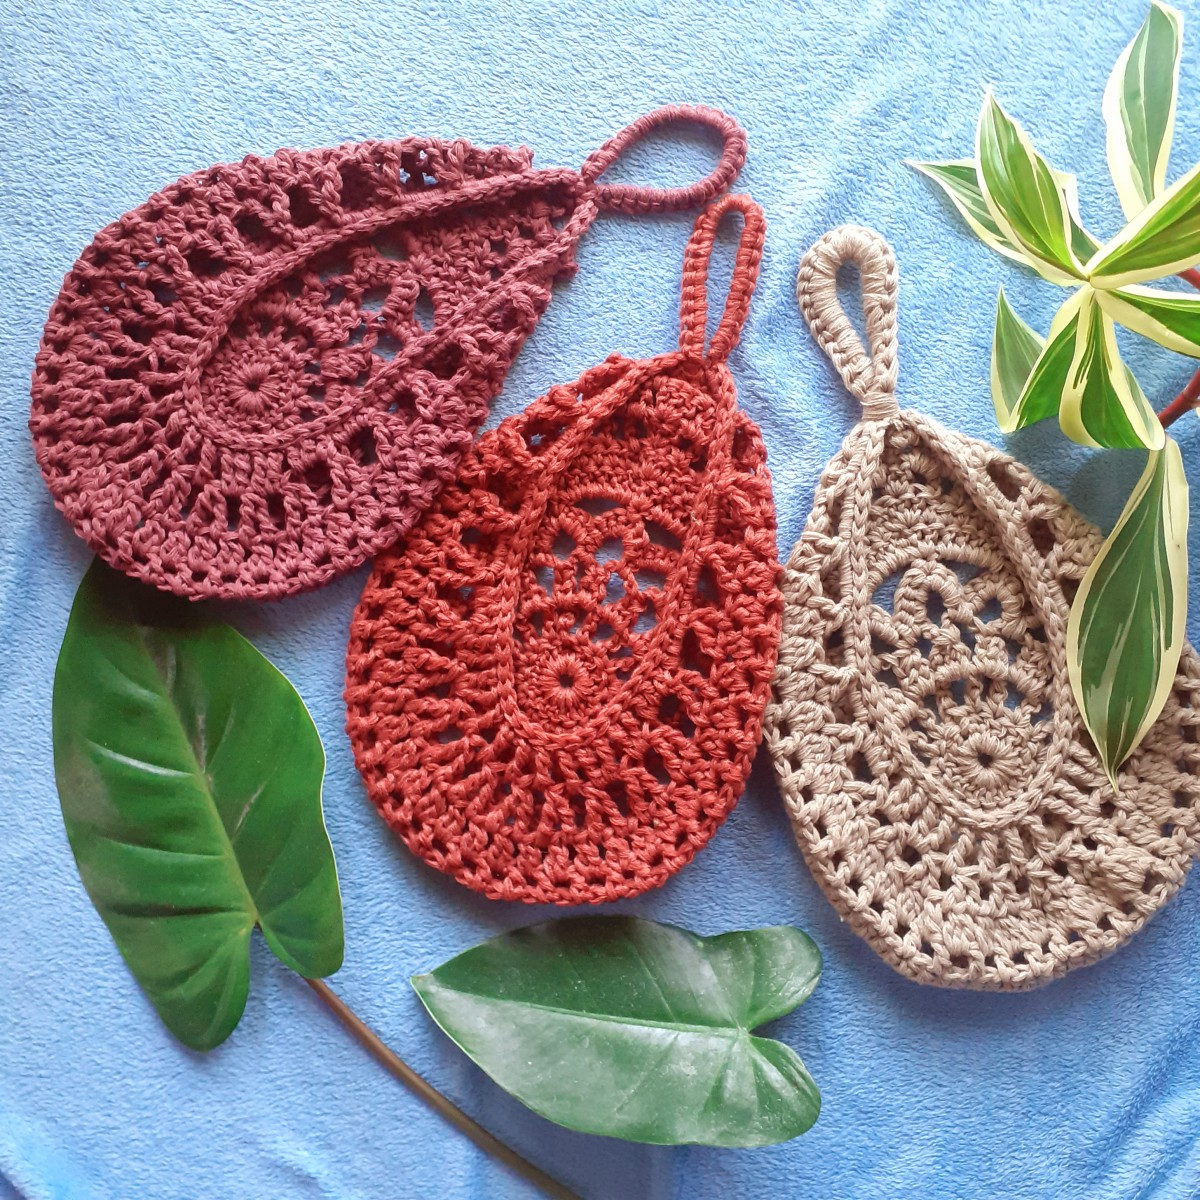 Crochet Teardrop Hanging Basket